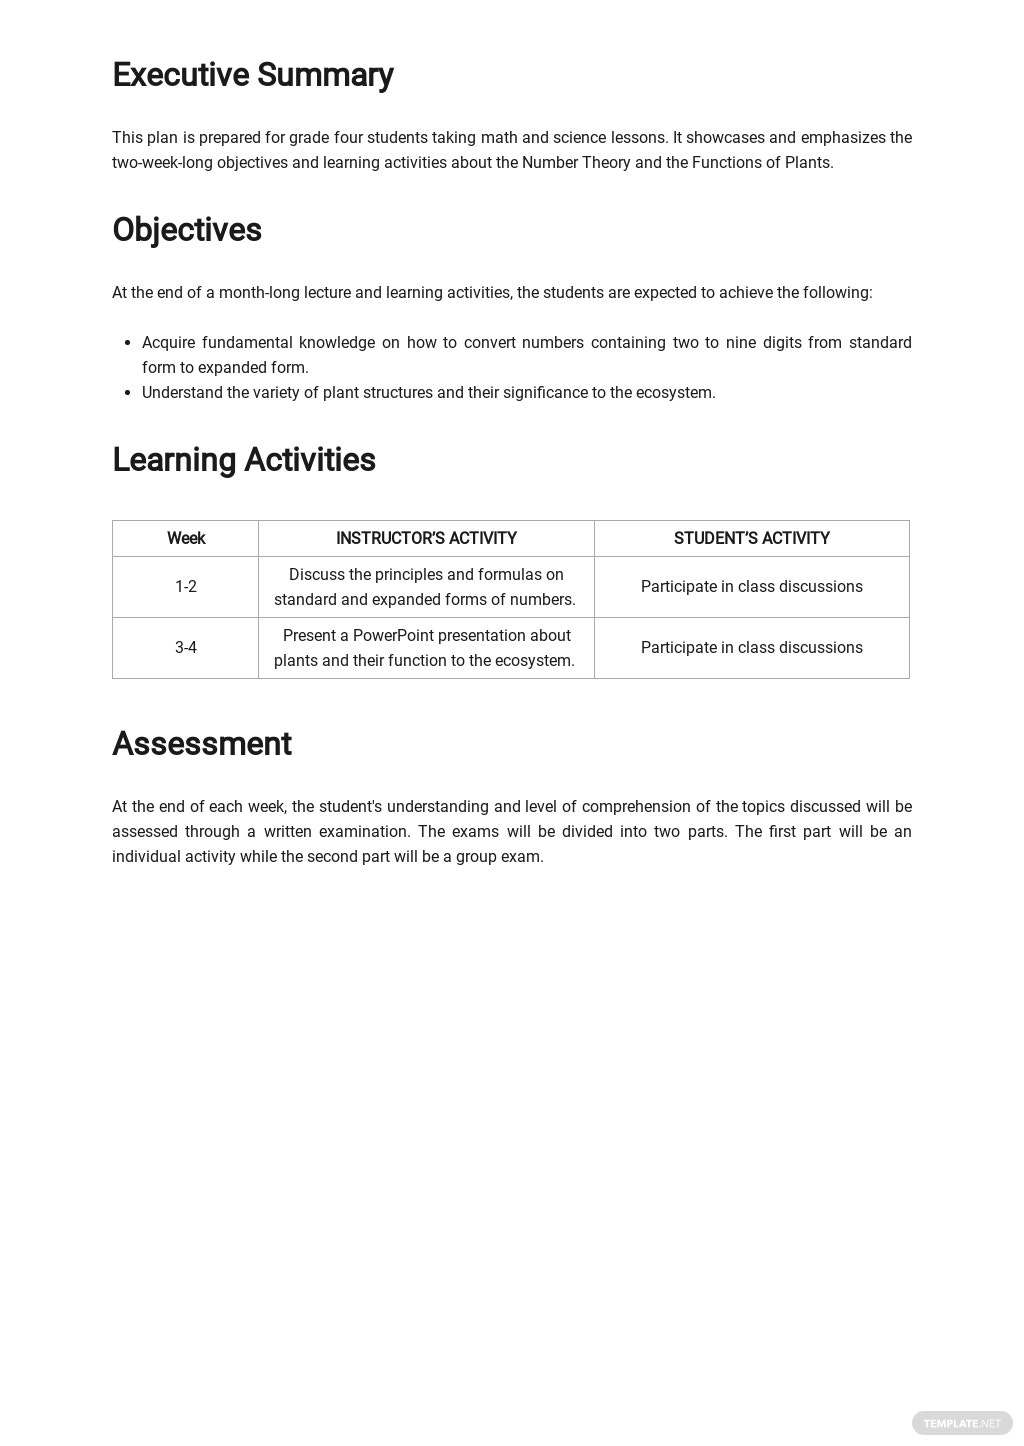 Math and Science Lesson Plan Template 1.jpe